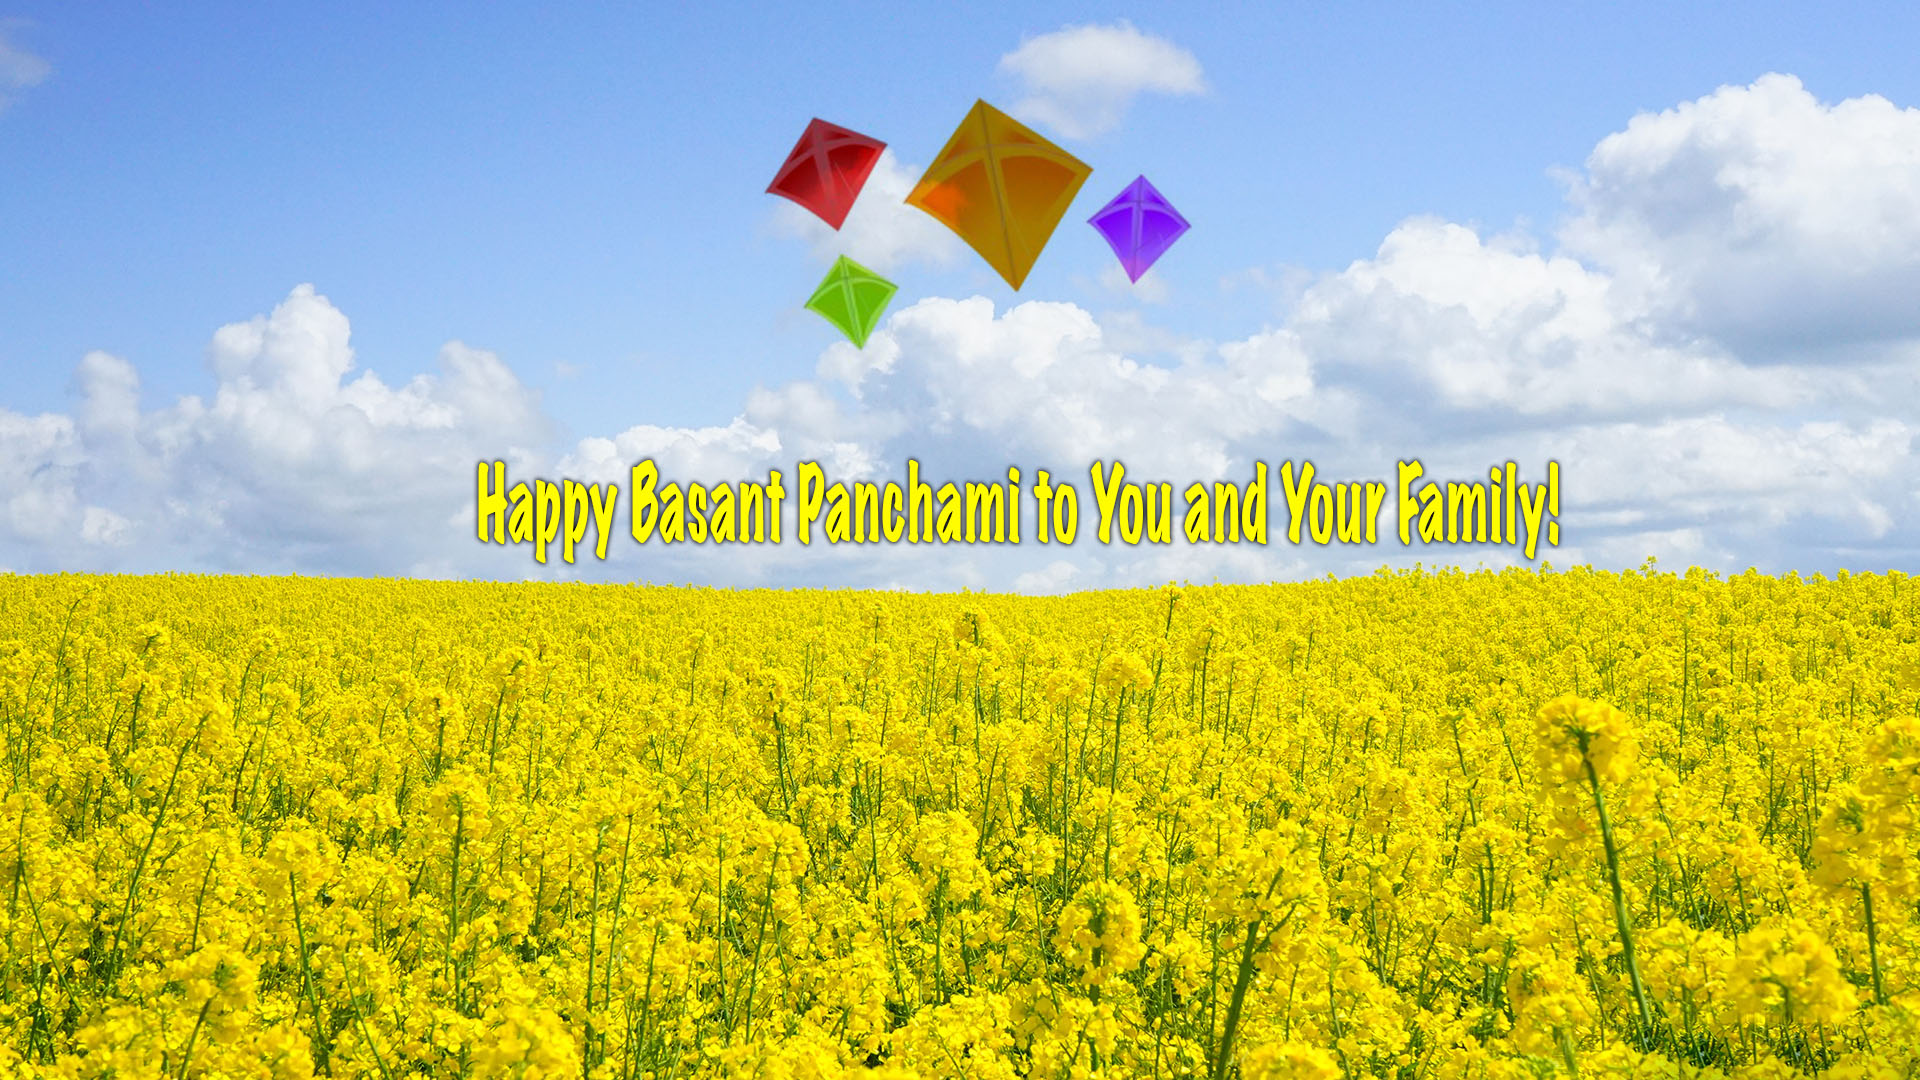 Basant Panchami Wallpapers 1080p